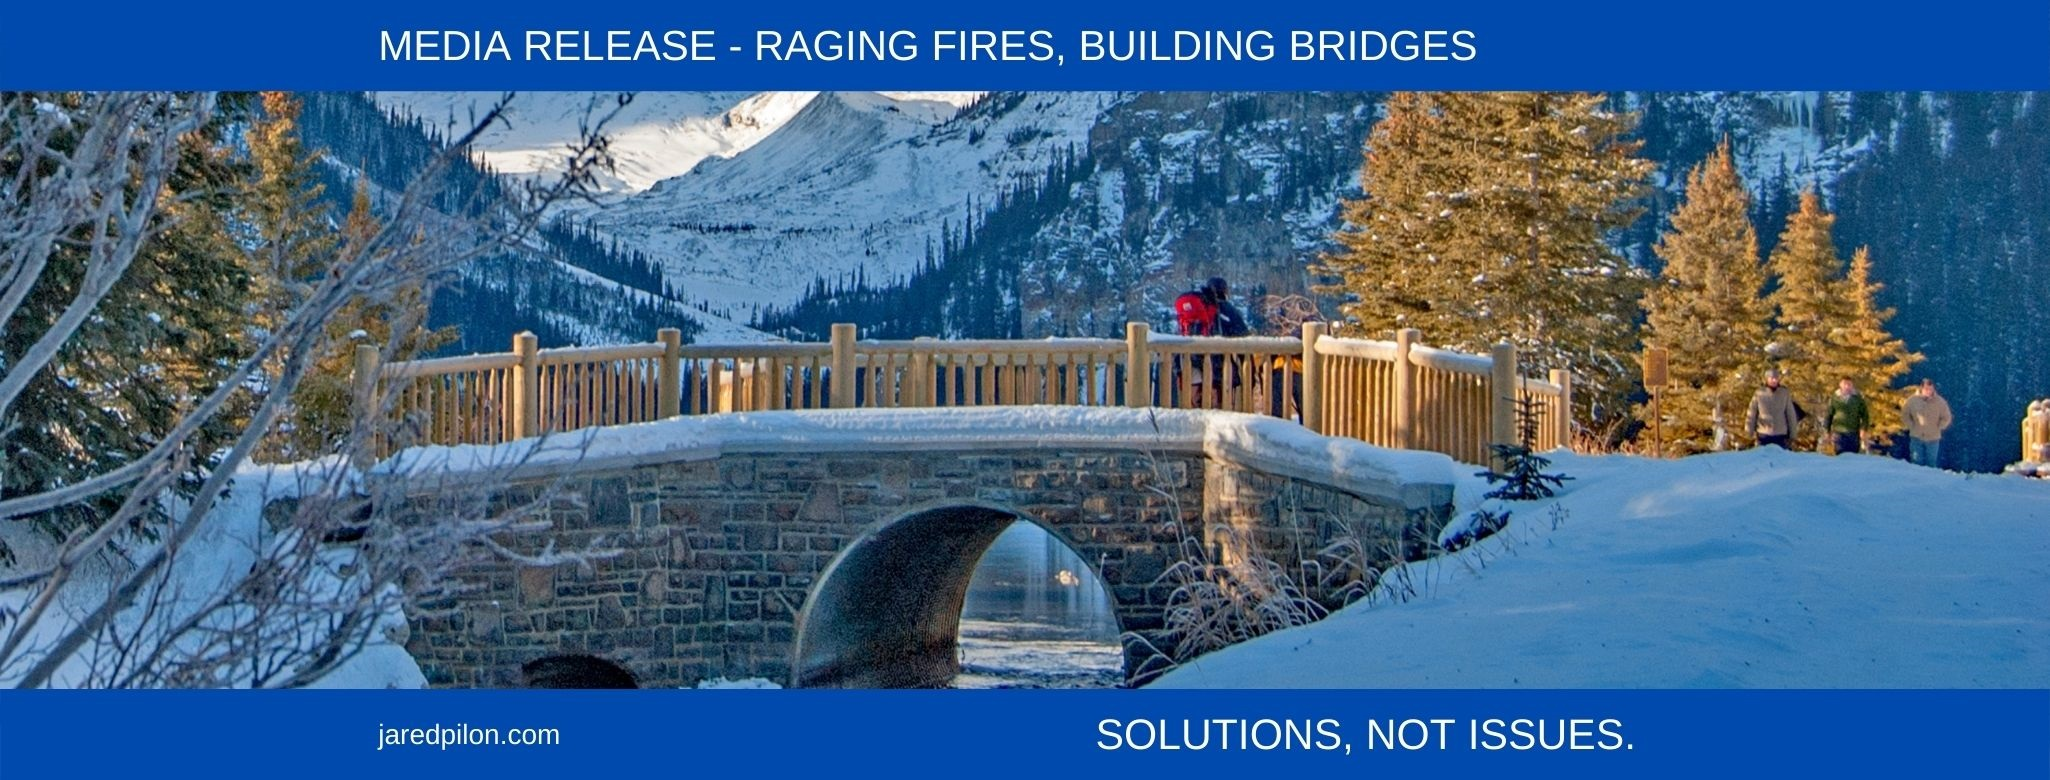 RAGING FIRES, BUILDING BRIDGES